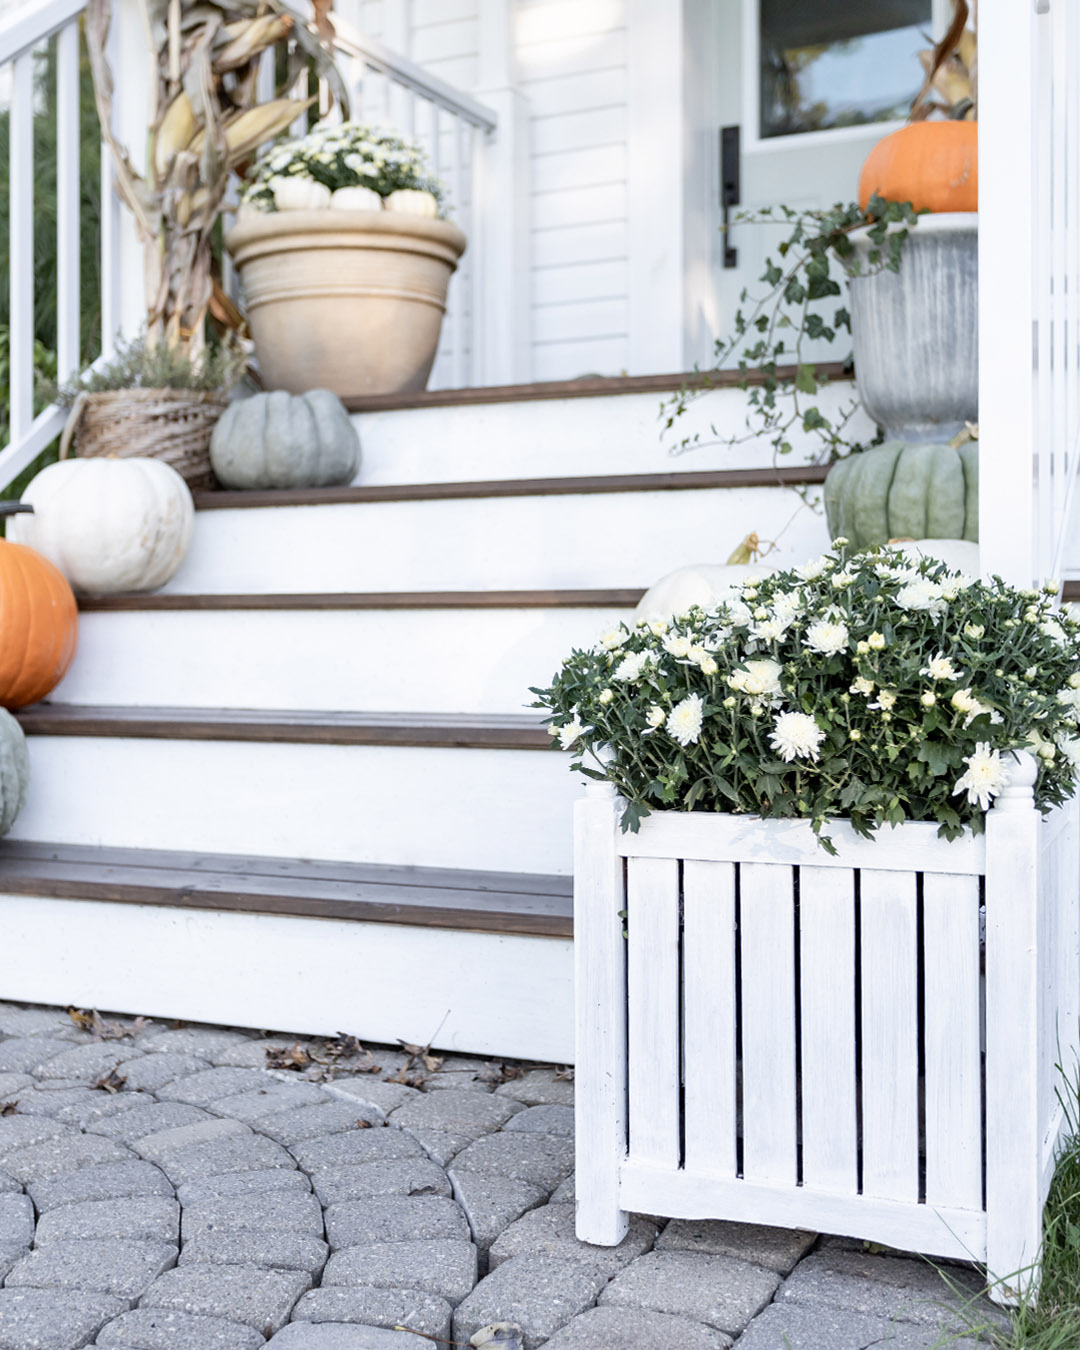 I'm excited to share how we have our front porch decorated this year with you! Here's our simple green and white front porch.